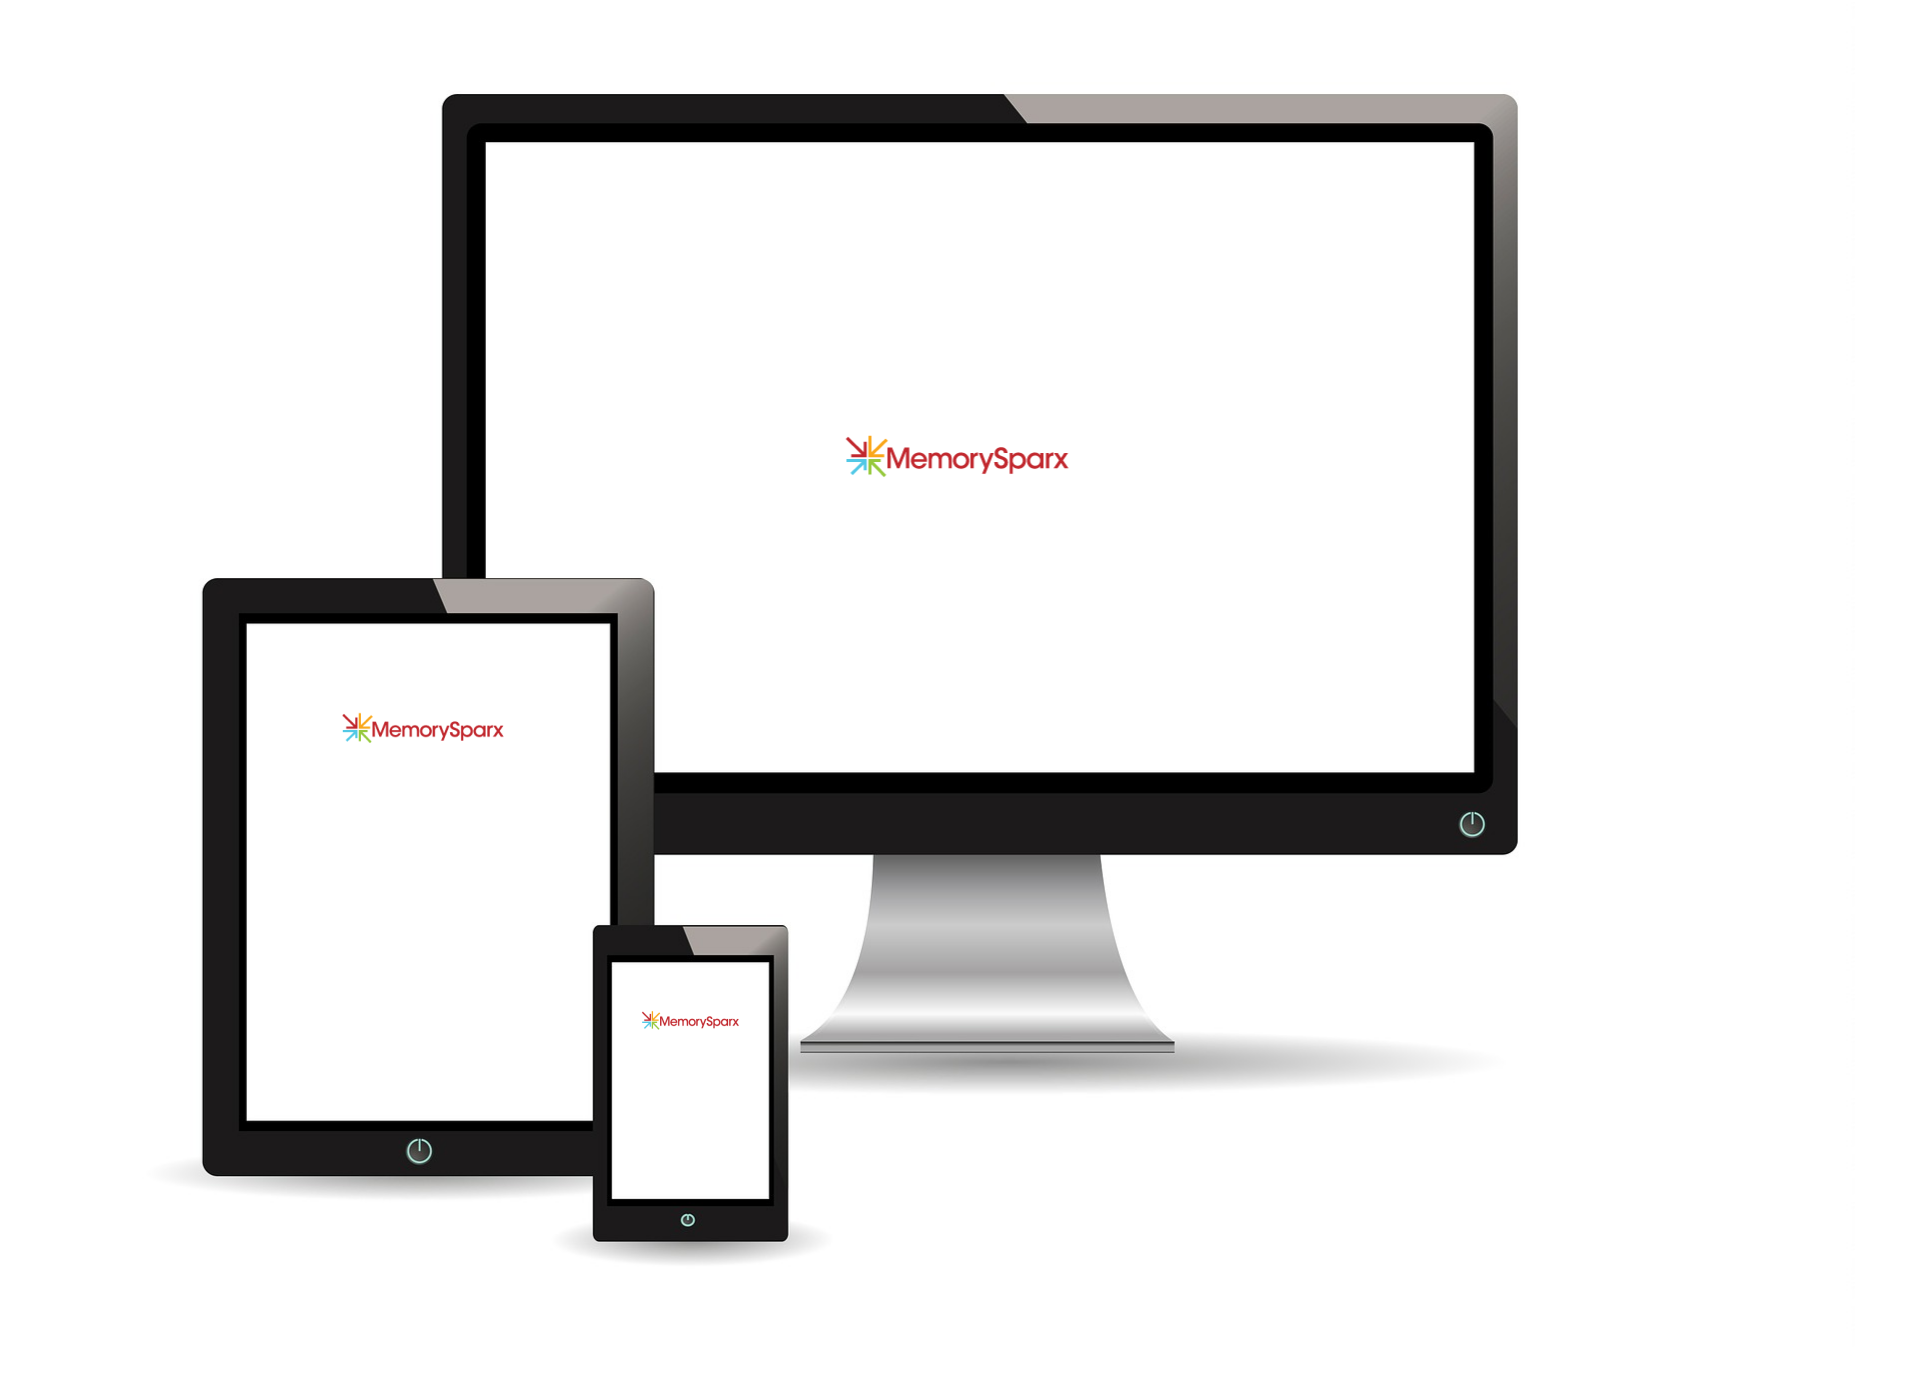 The MemorySparx app is designed for tablets, phones, and computers.